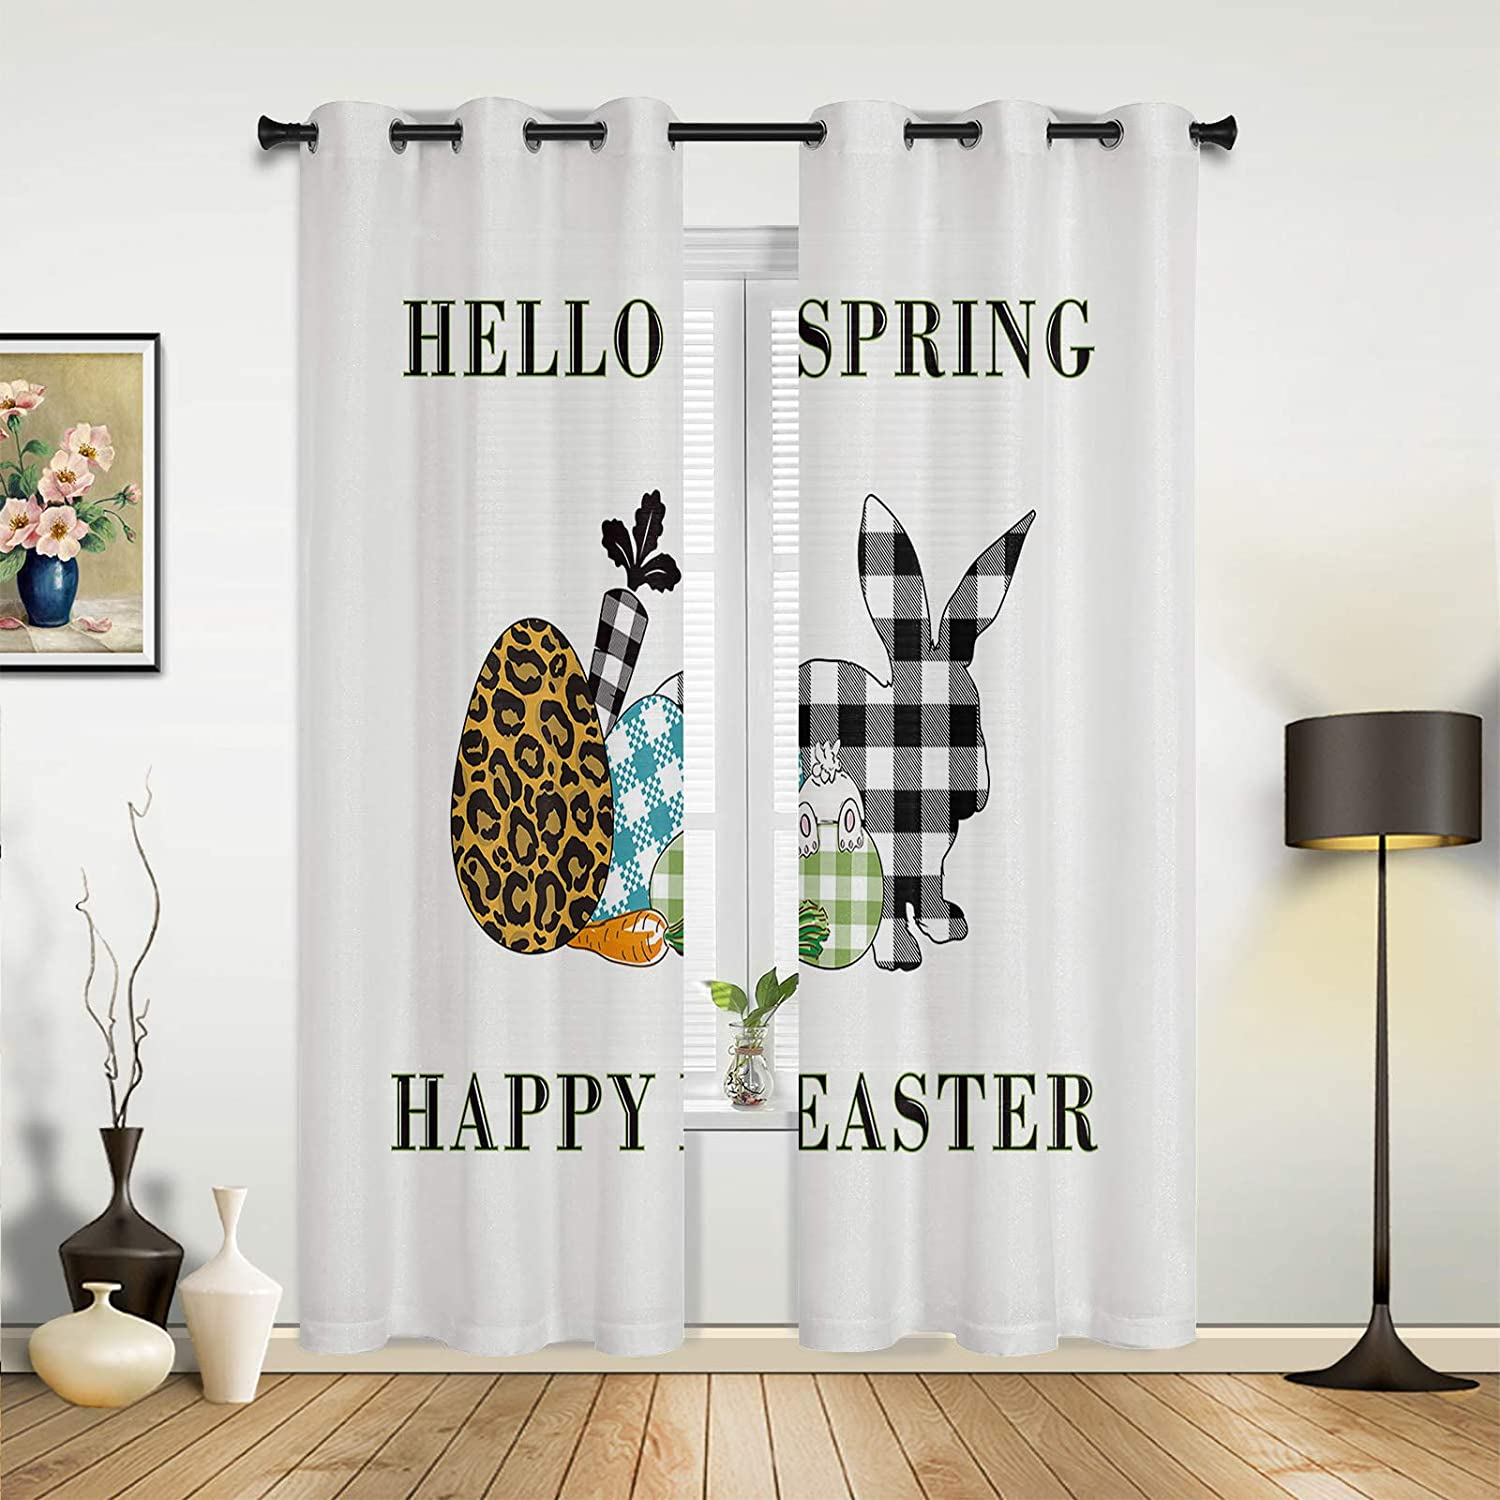 Window Sheer Curtains for Bedroom Happy Cute Branded Free shipping anywhere in the nation goods Room Easter Living